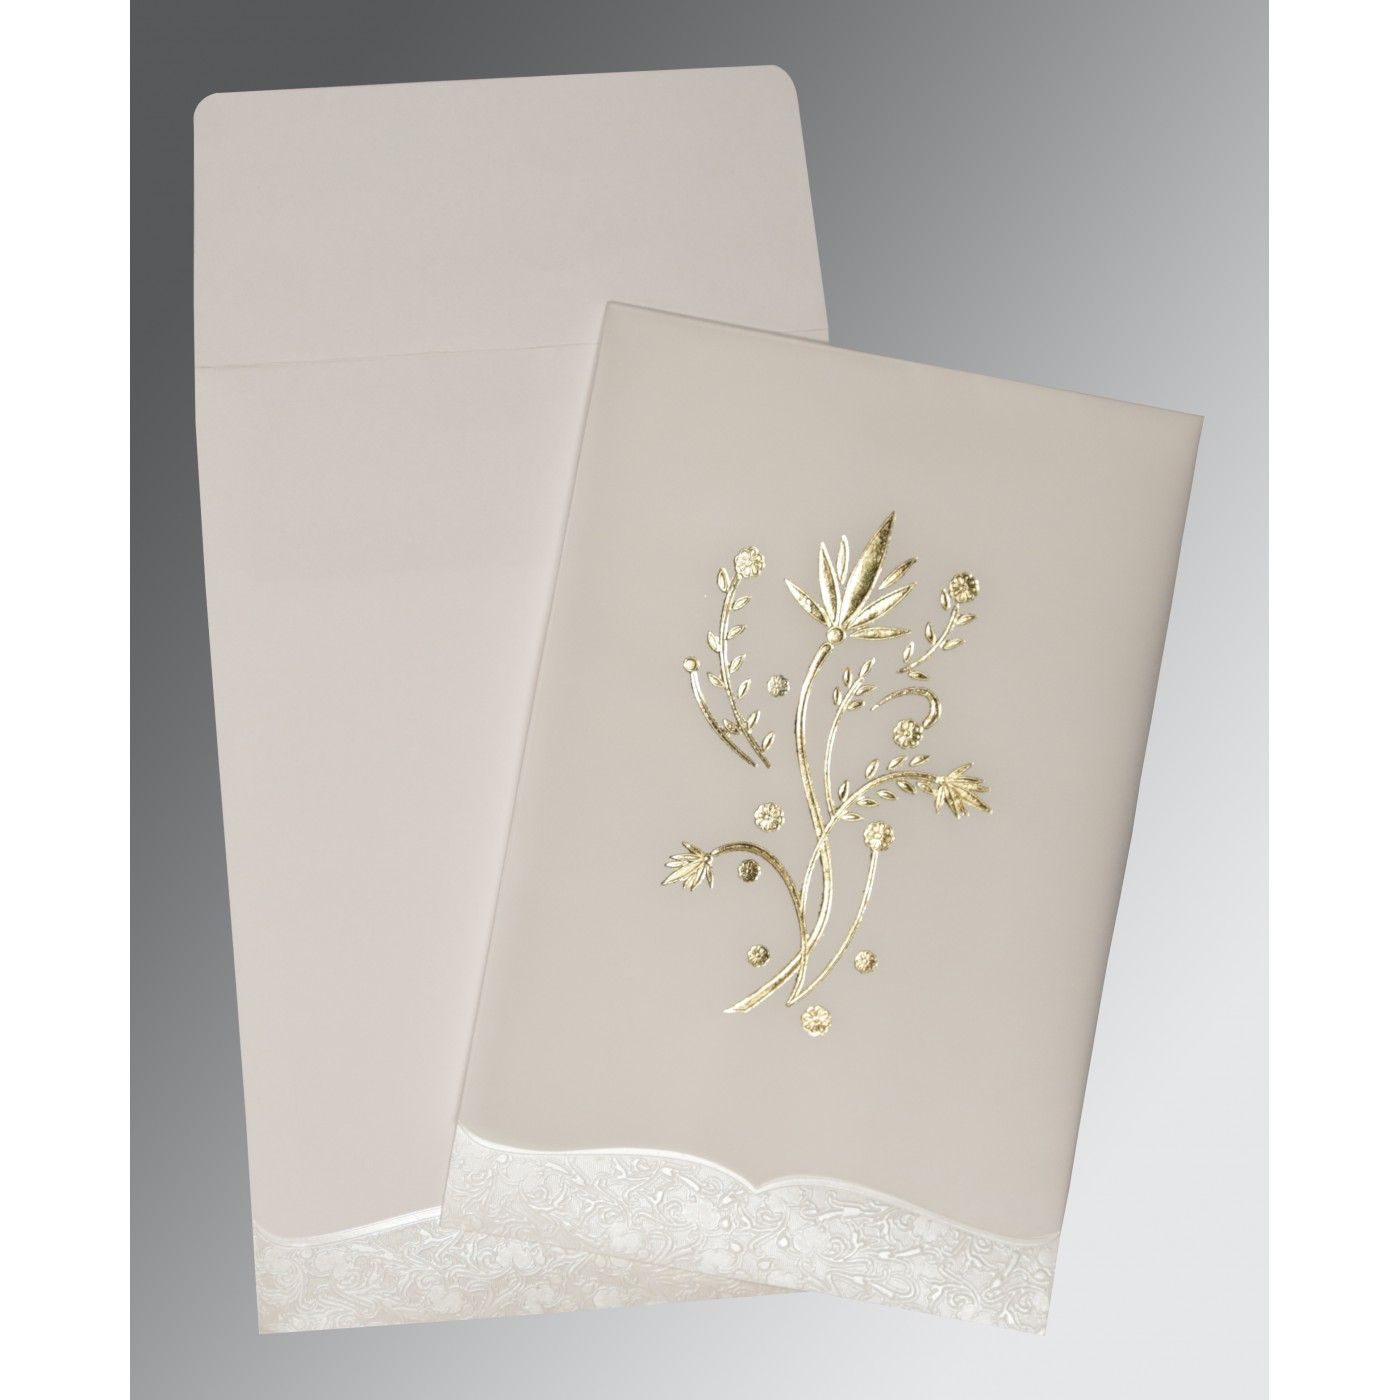 OFF-WHITE FLORAL THEMED - FOIL STAMPED WEDDING CARD : CD-1495 - IndianWeddingCards